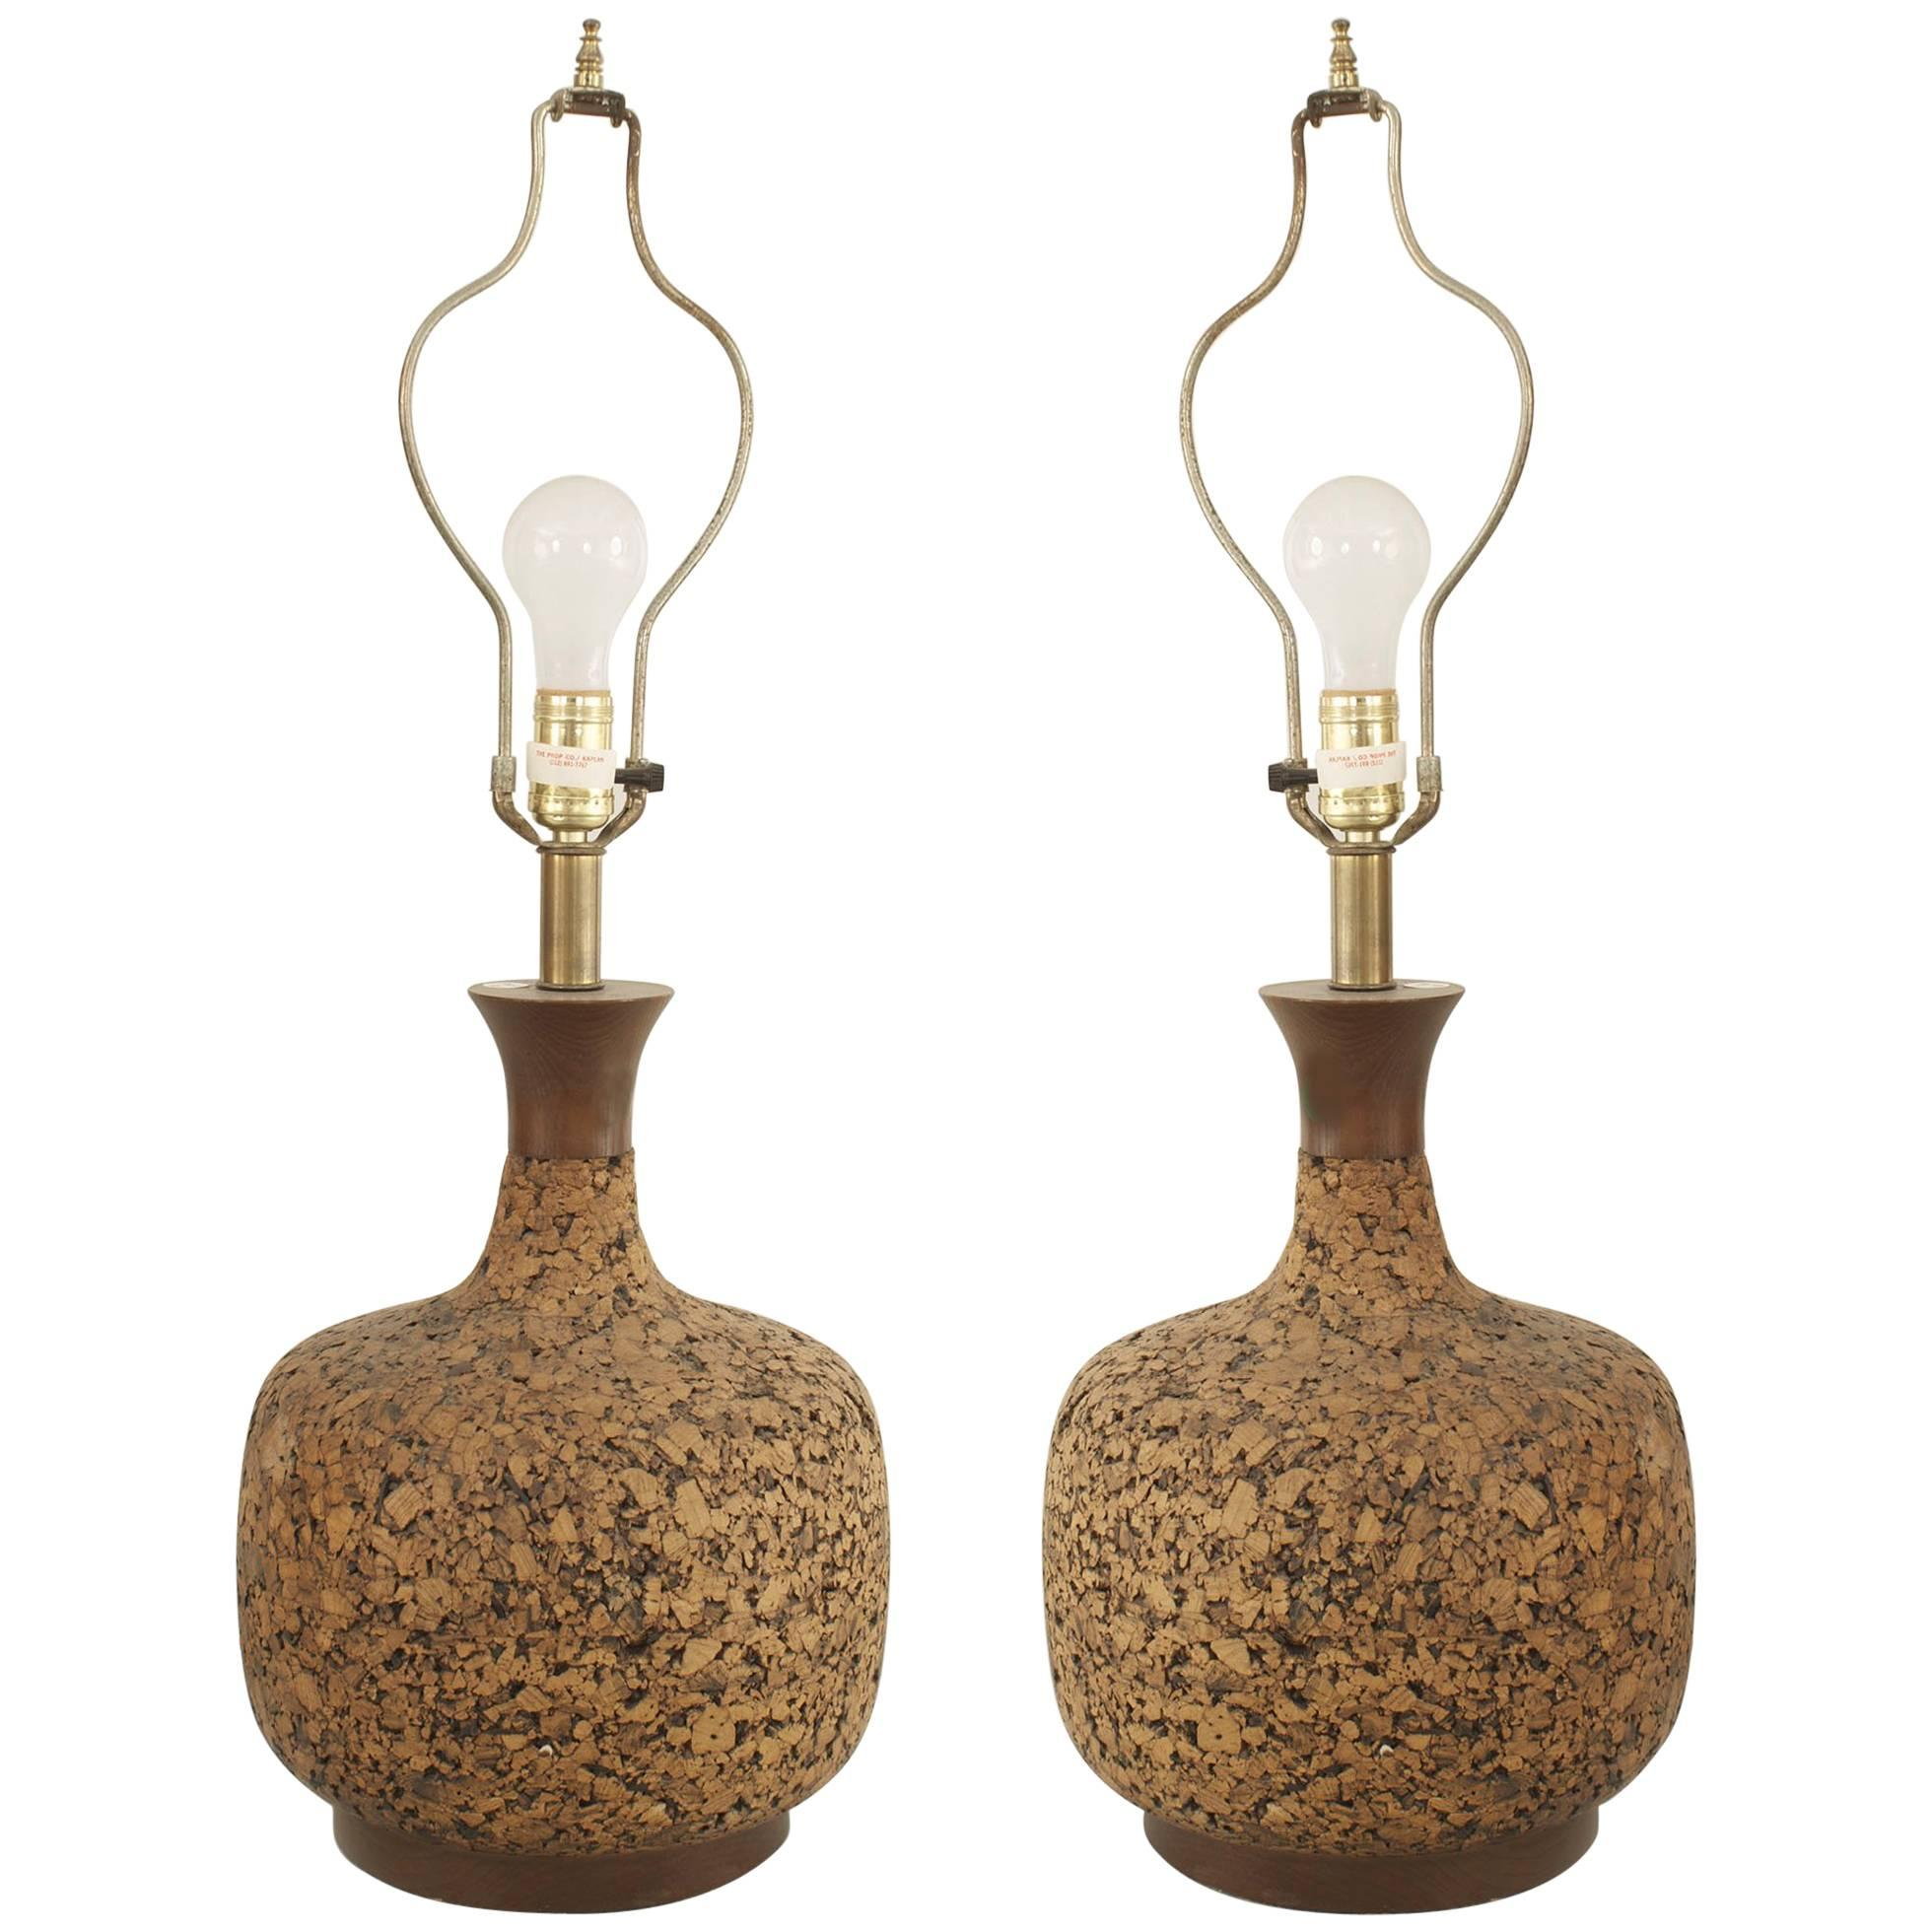 Pair of American Midcentury Bulbous Shaped Cork Table Lamps